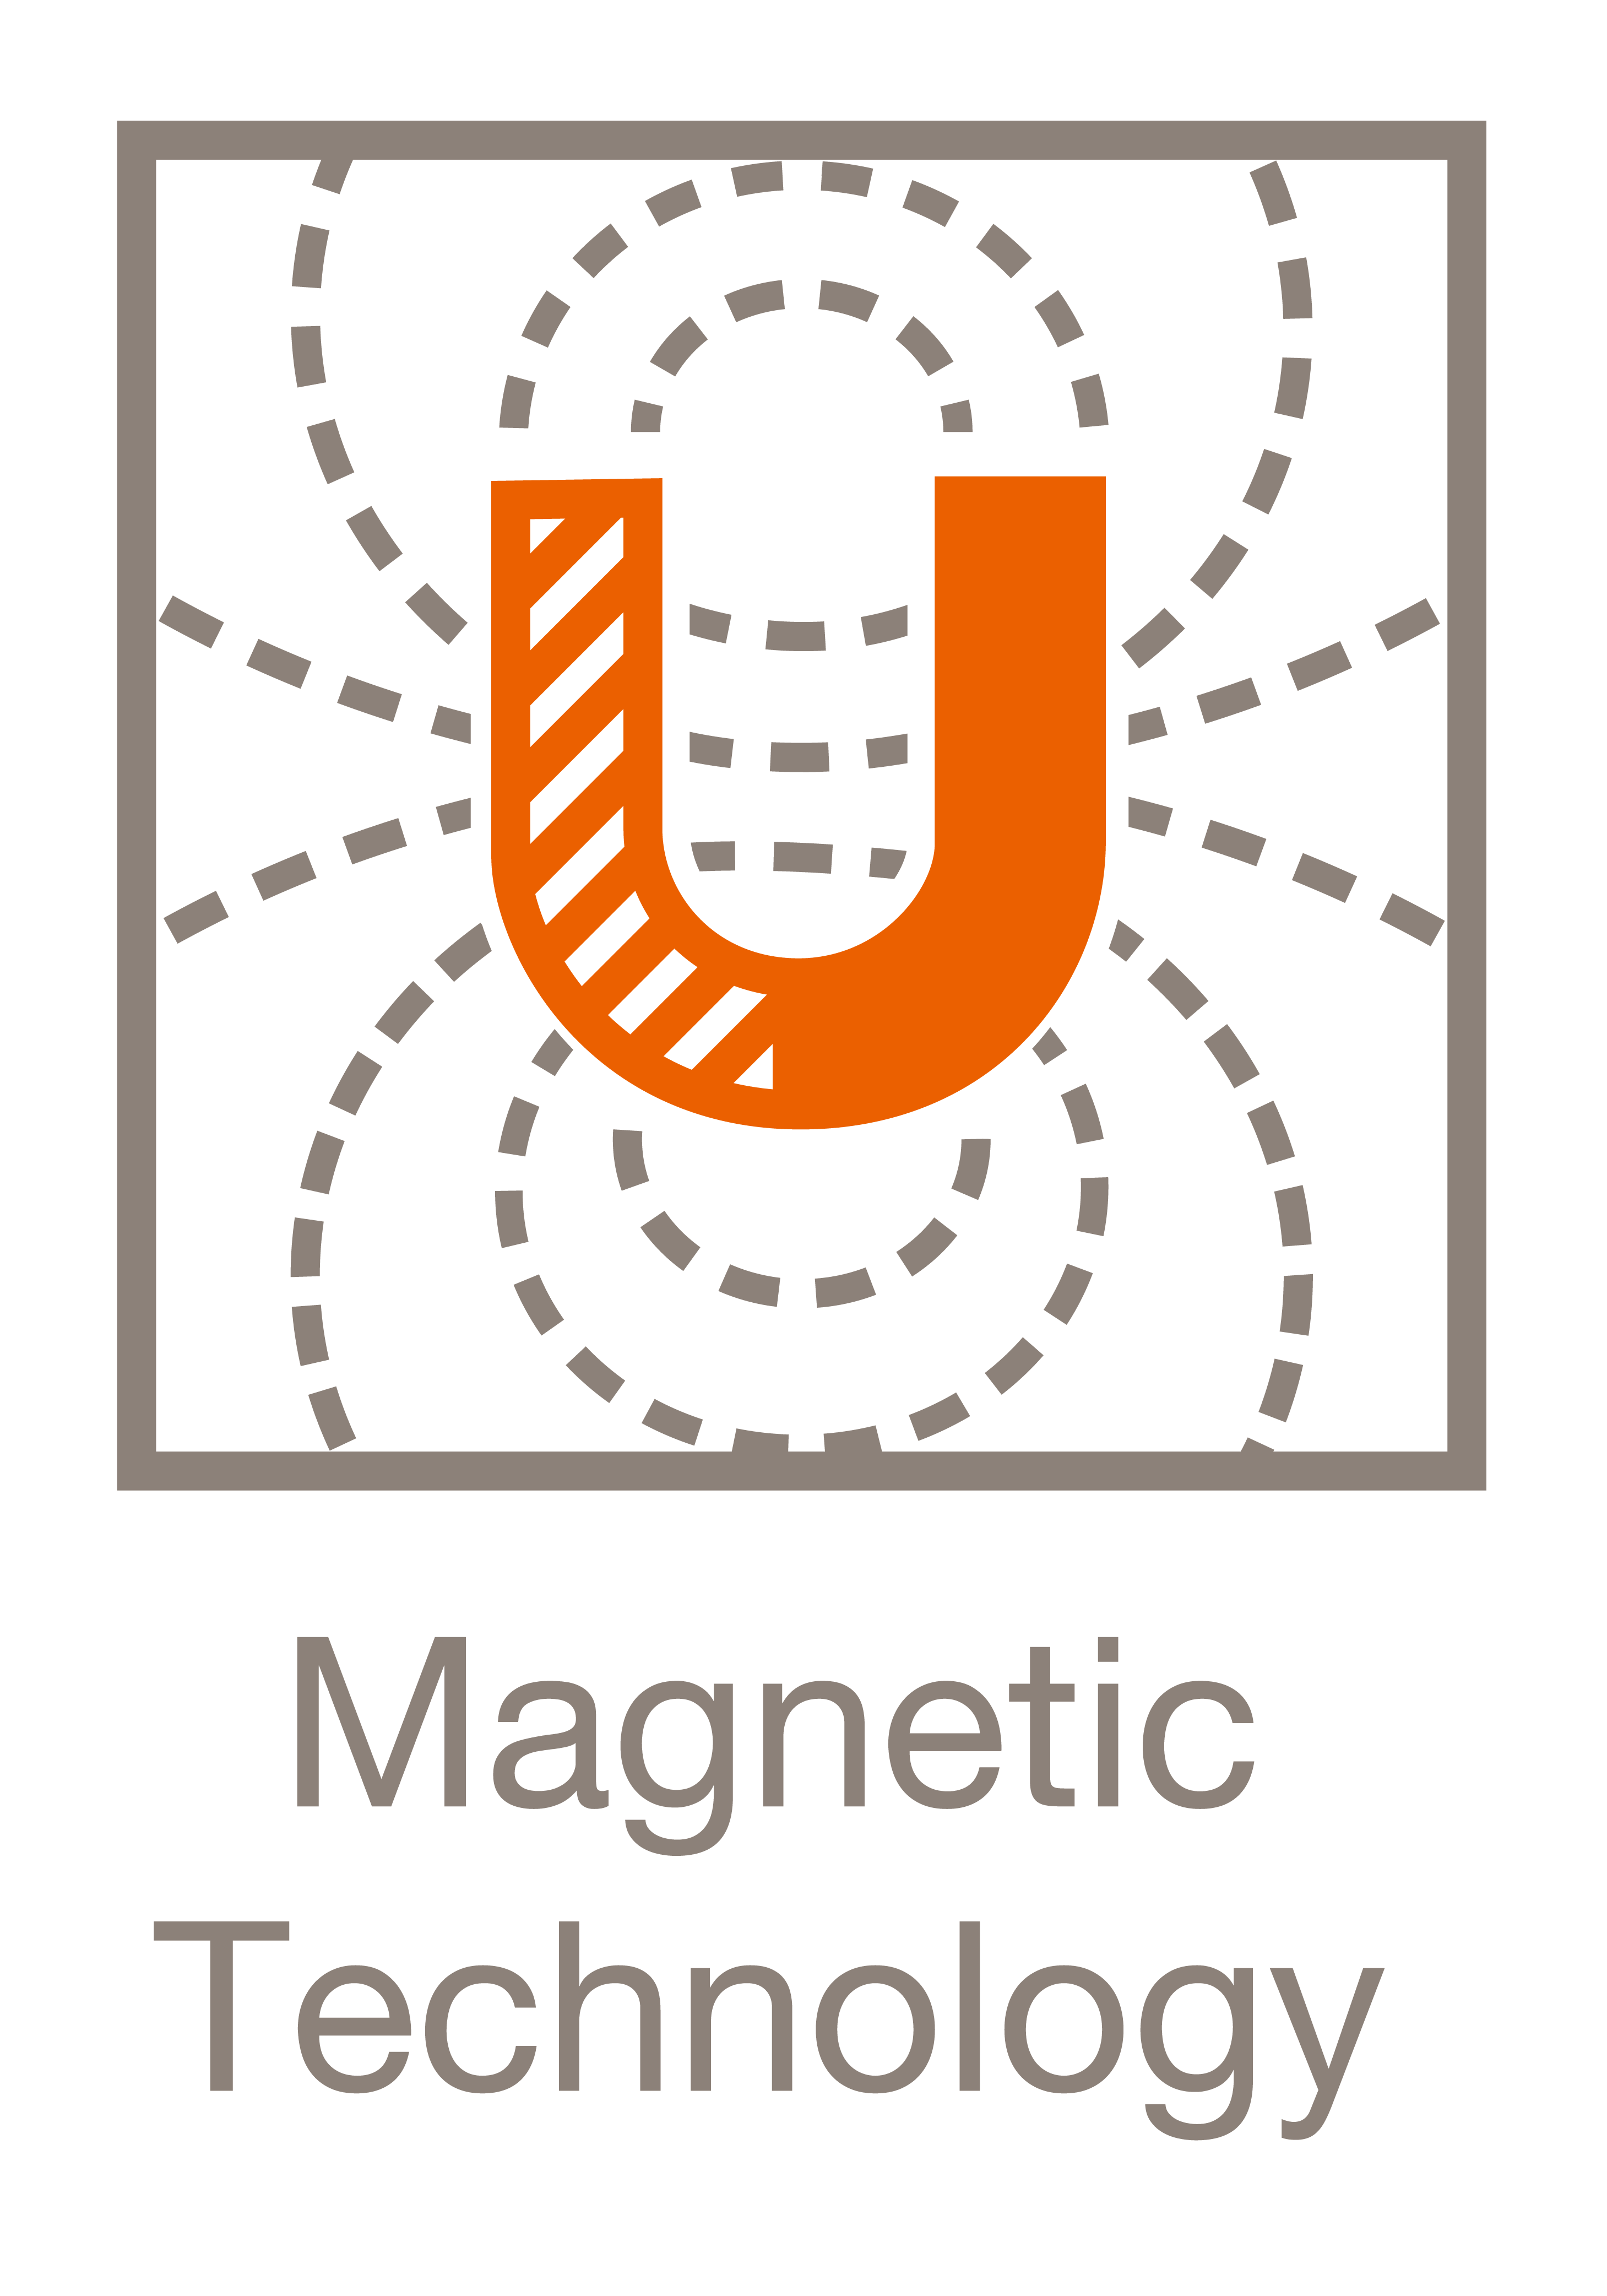 Magnetic Technology